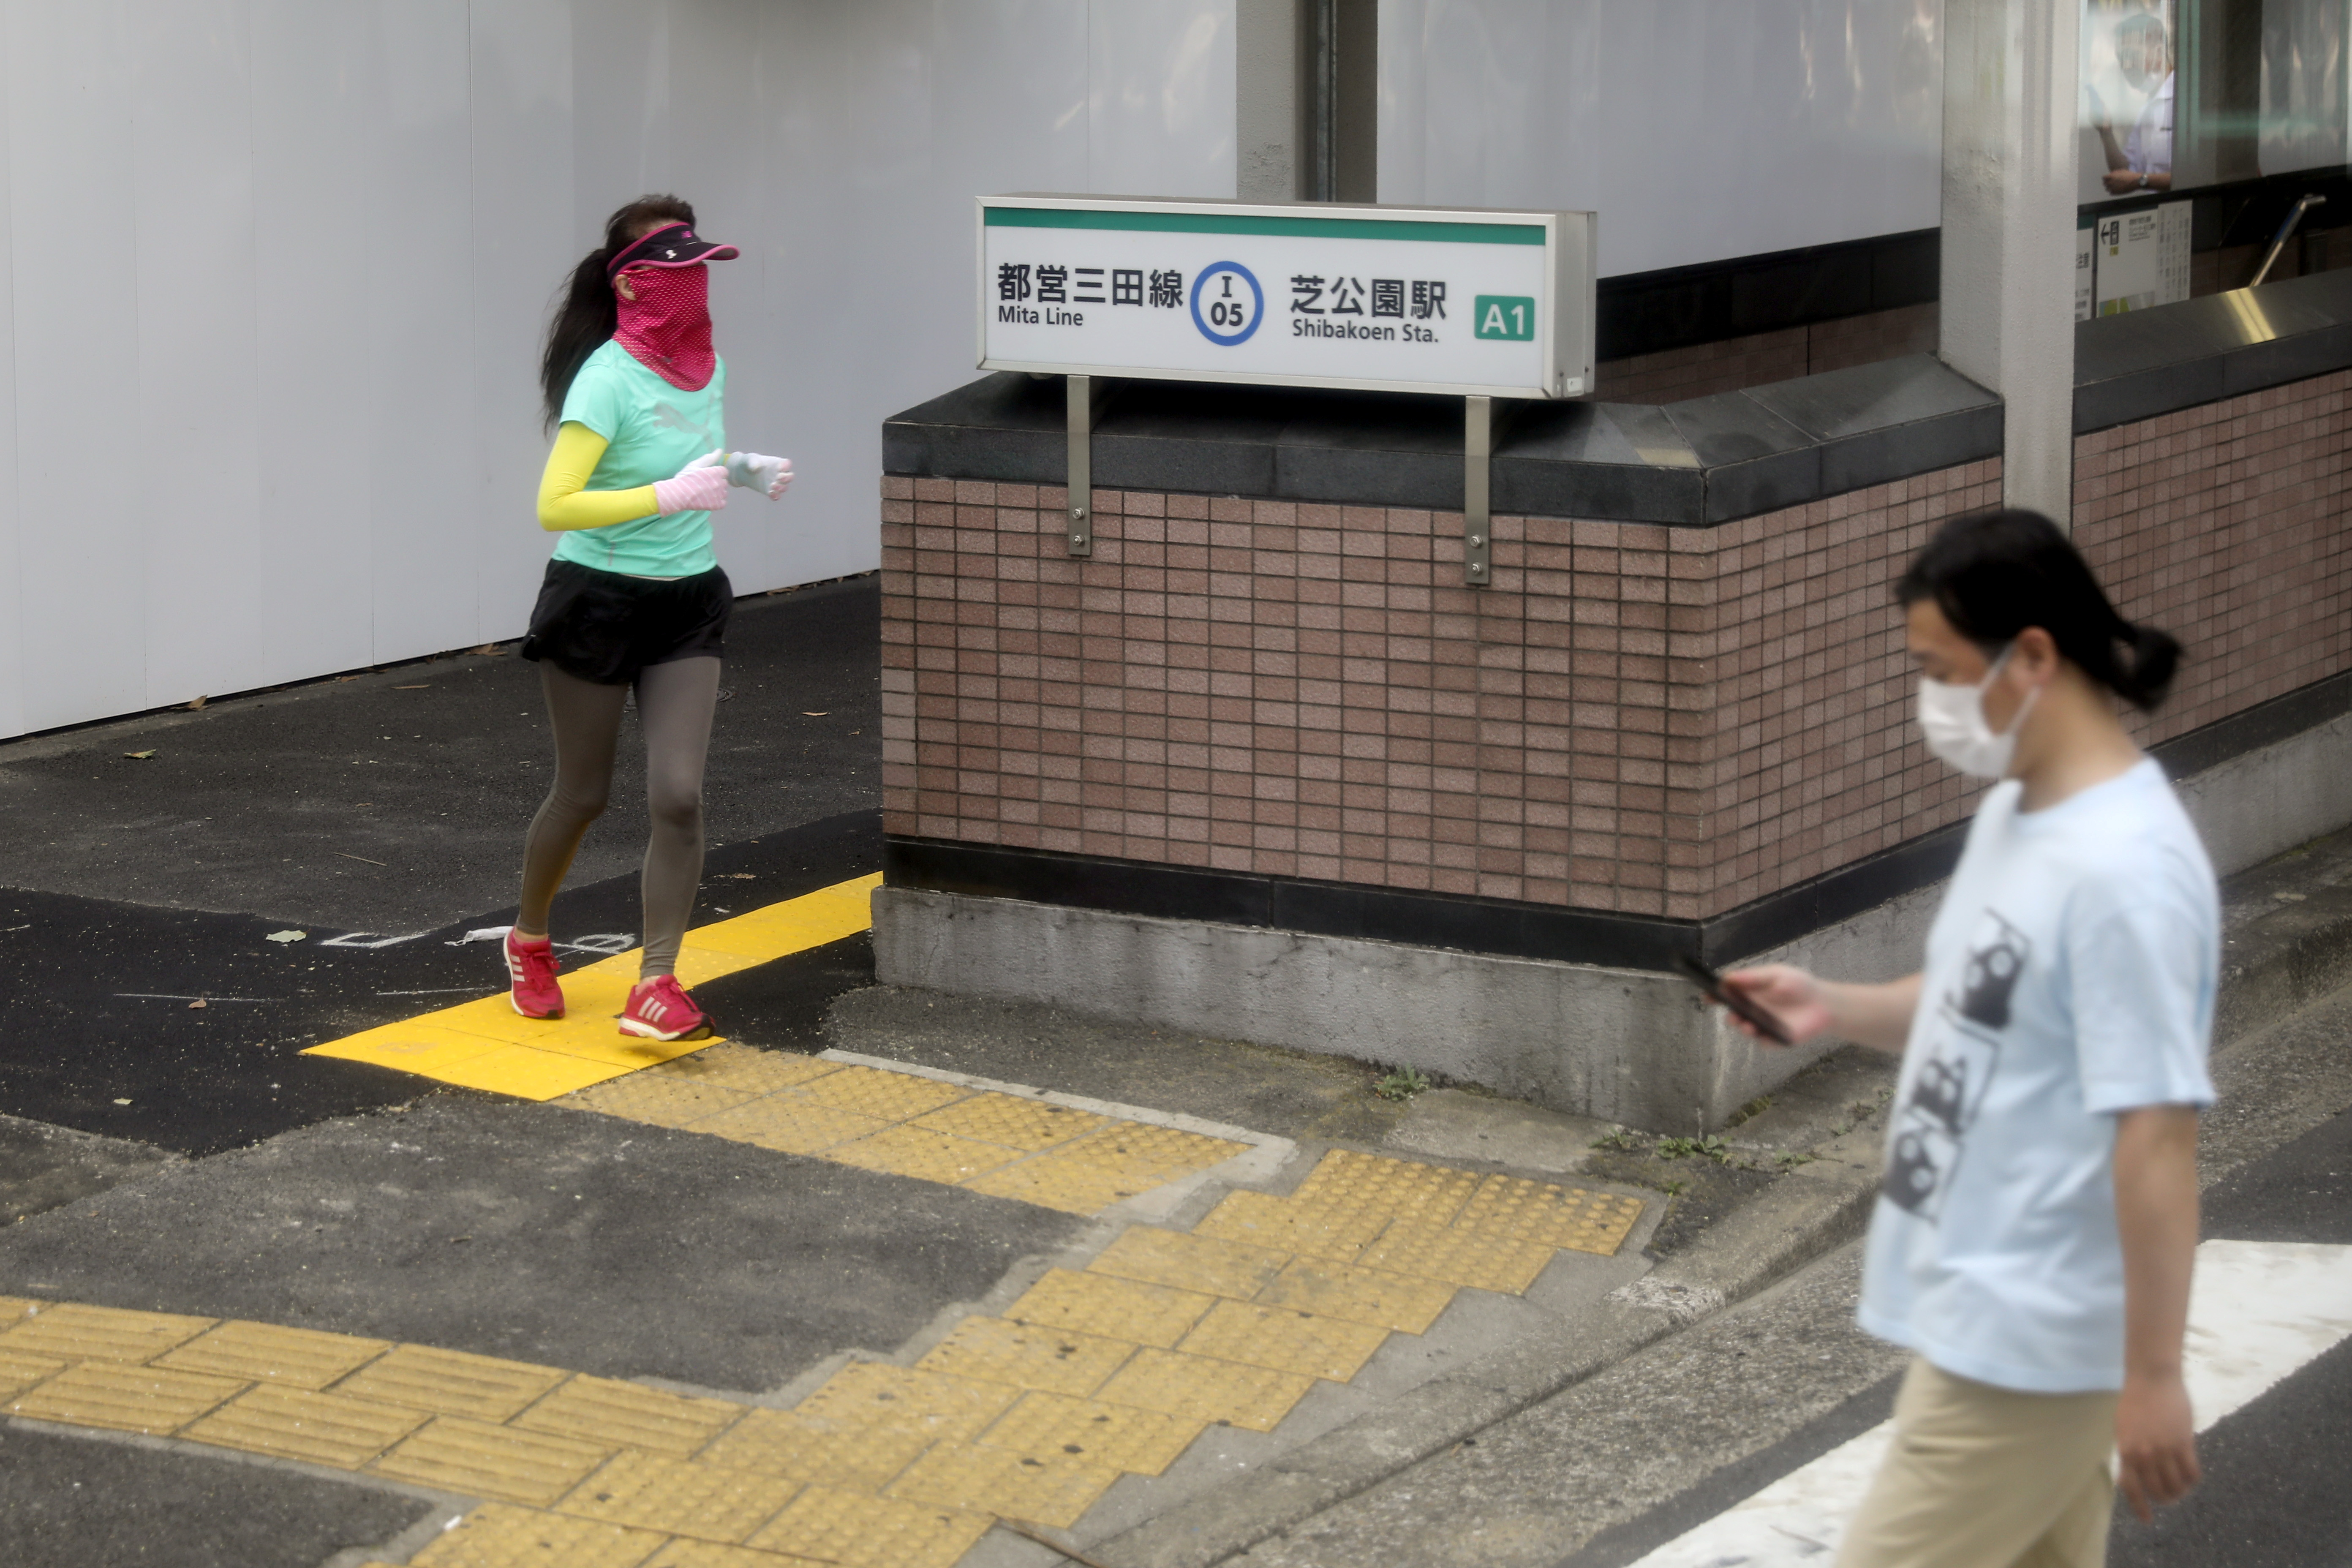 People wearing face masks pass Shibakoen Station during the coronavirus disease (COVID-19) pandemic in Tokyo, Japan, July 25, 2021.     REUTERS/Kevin Coombs